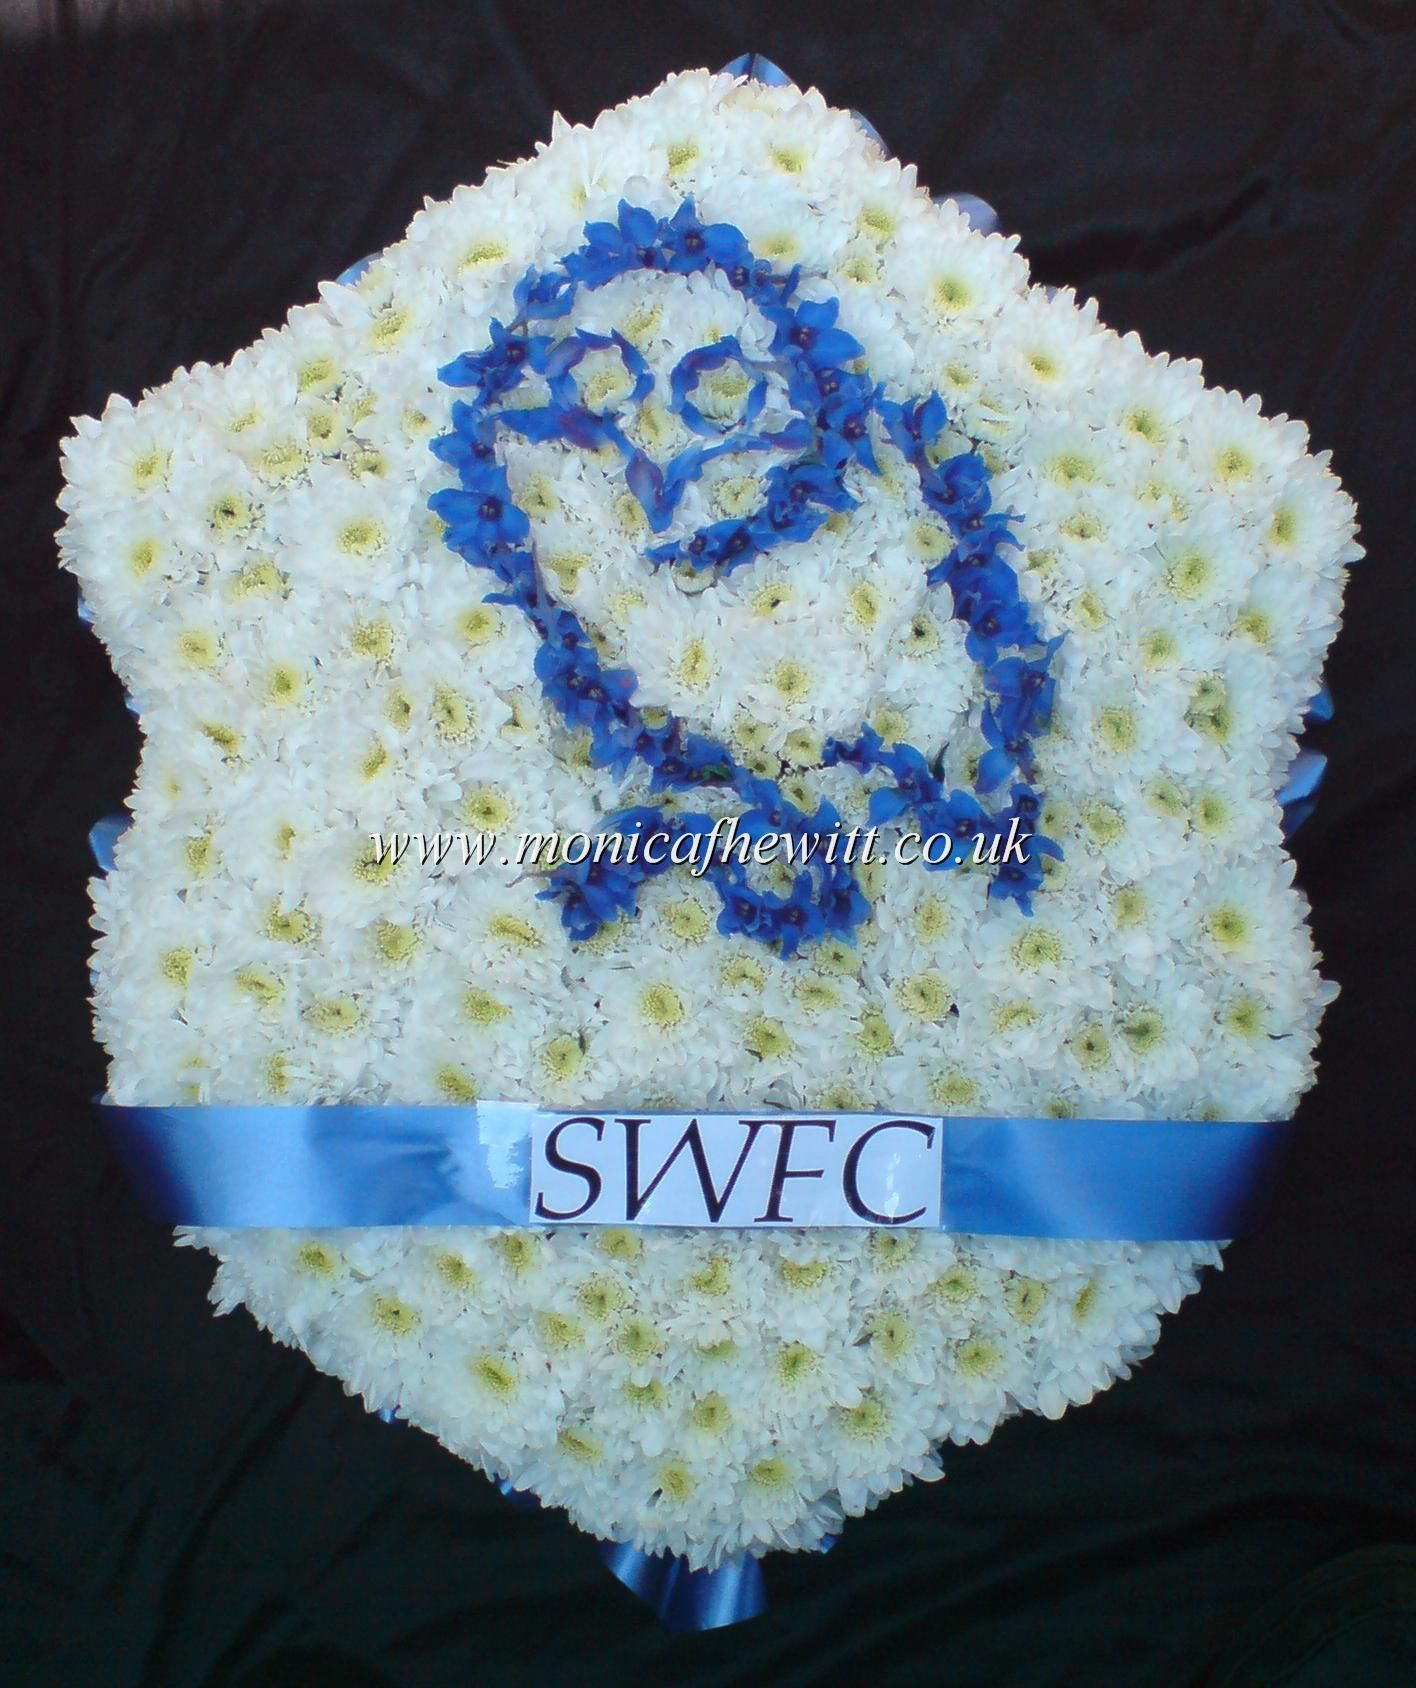 Swfc owls shield funeral flowers monica f hewitt florist sheffield swfc owls shield funeral flowers monica f hewitt florist sheffield izmirmasajfo Gallery